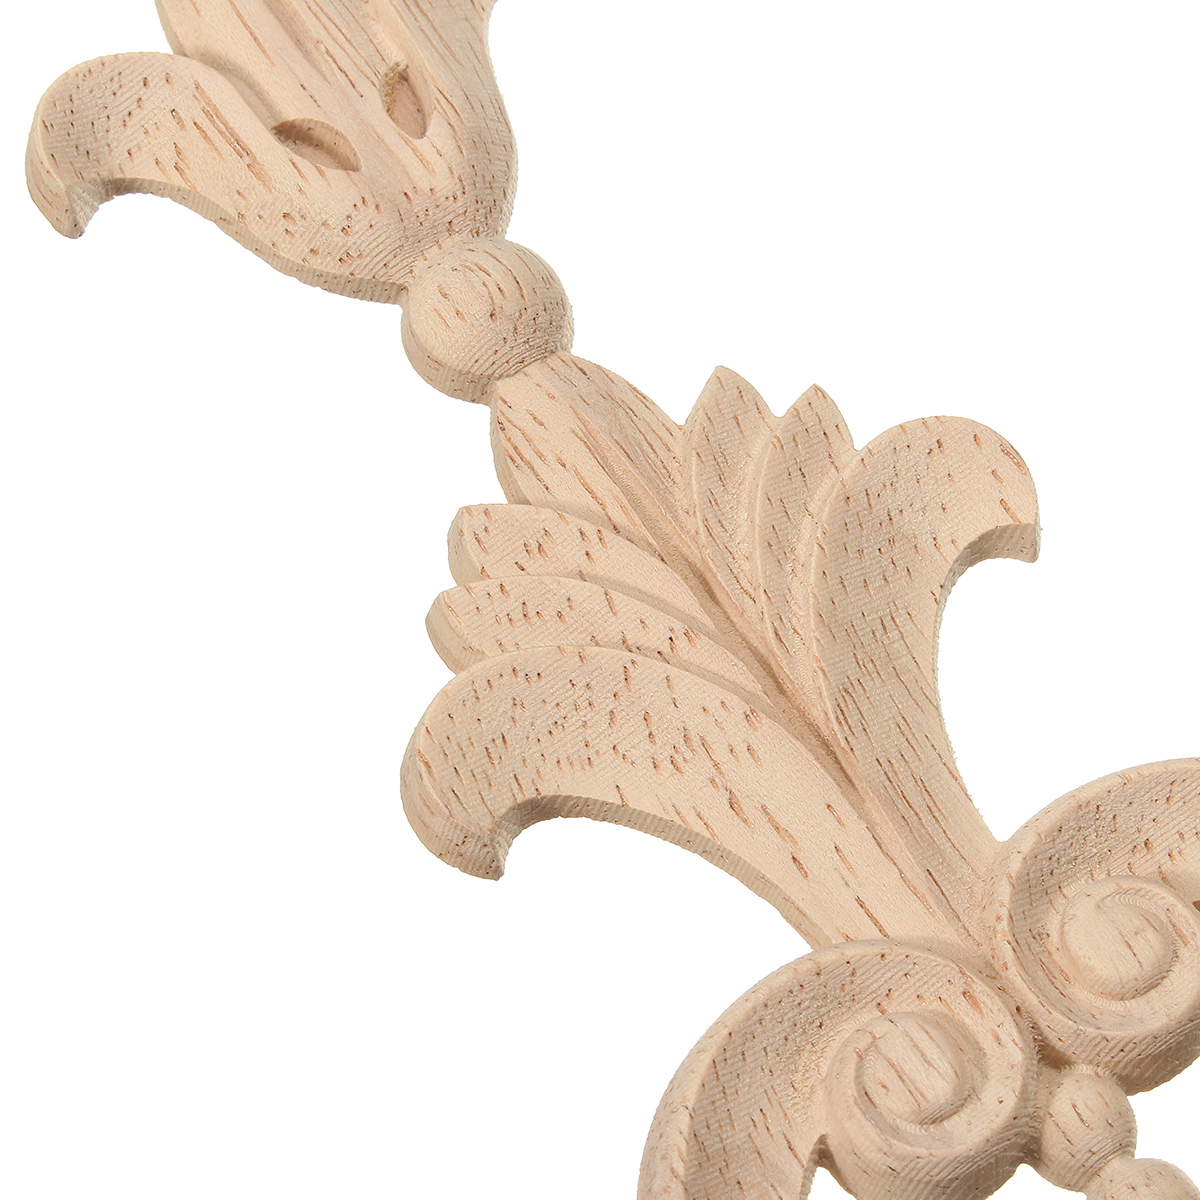 Wood Carved Applique Frame Onlay Furniture Decoration Unpainted 360x70x8mm